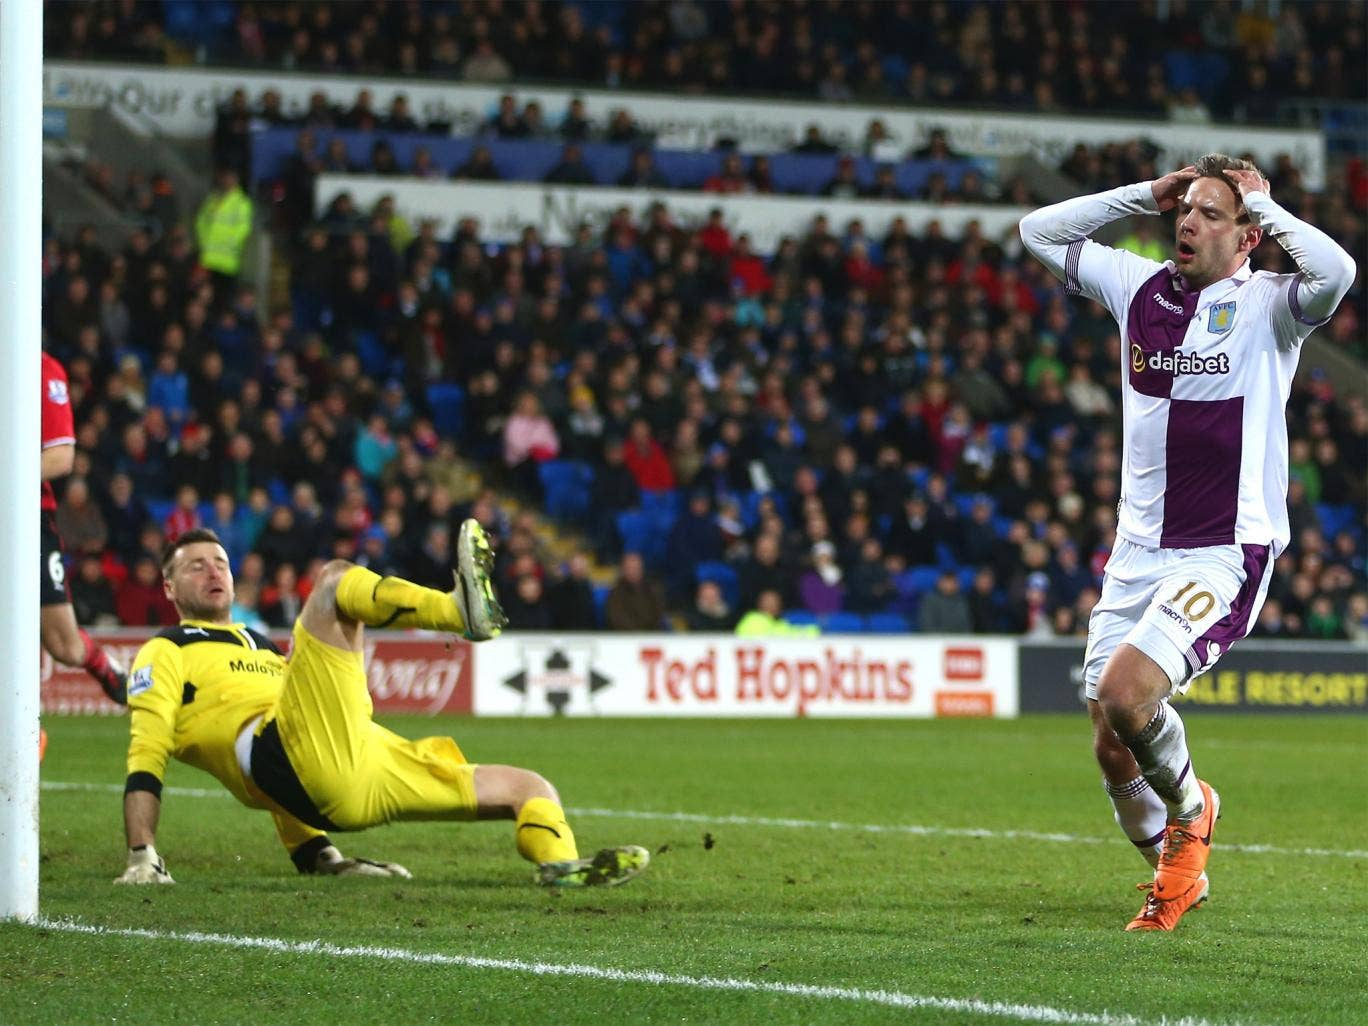 Cardiff's David Marshall makes a last minute save from Andreas Weimann